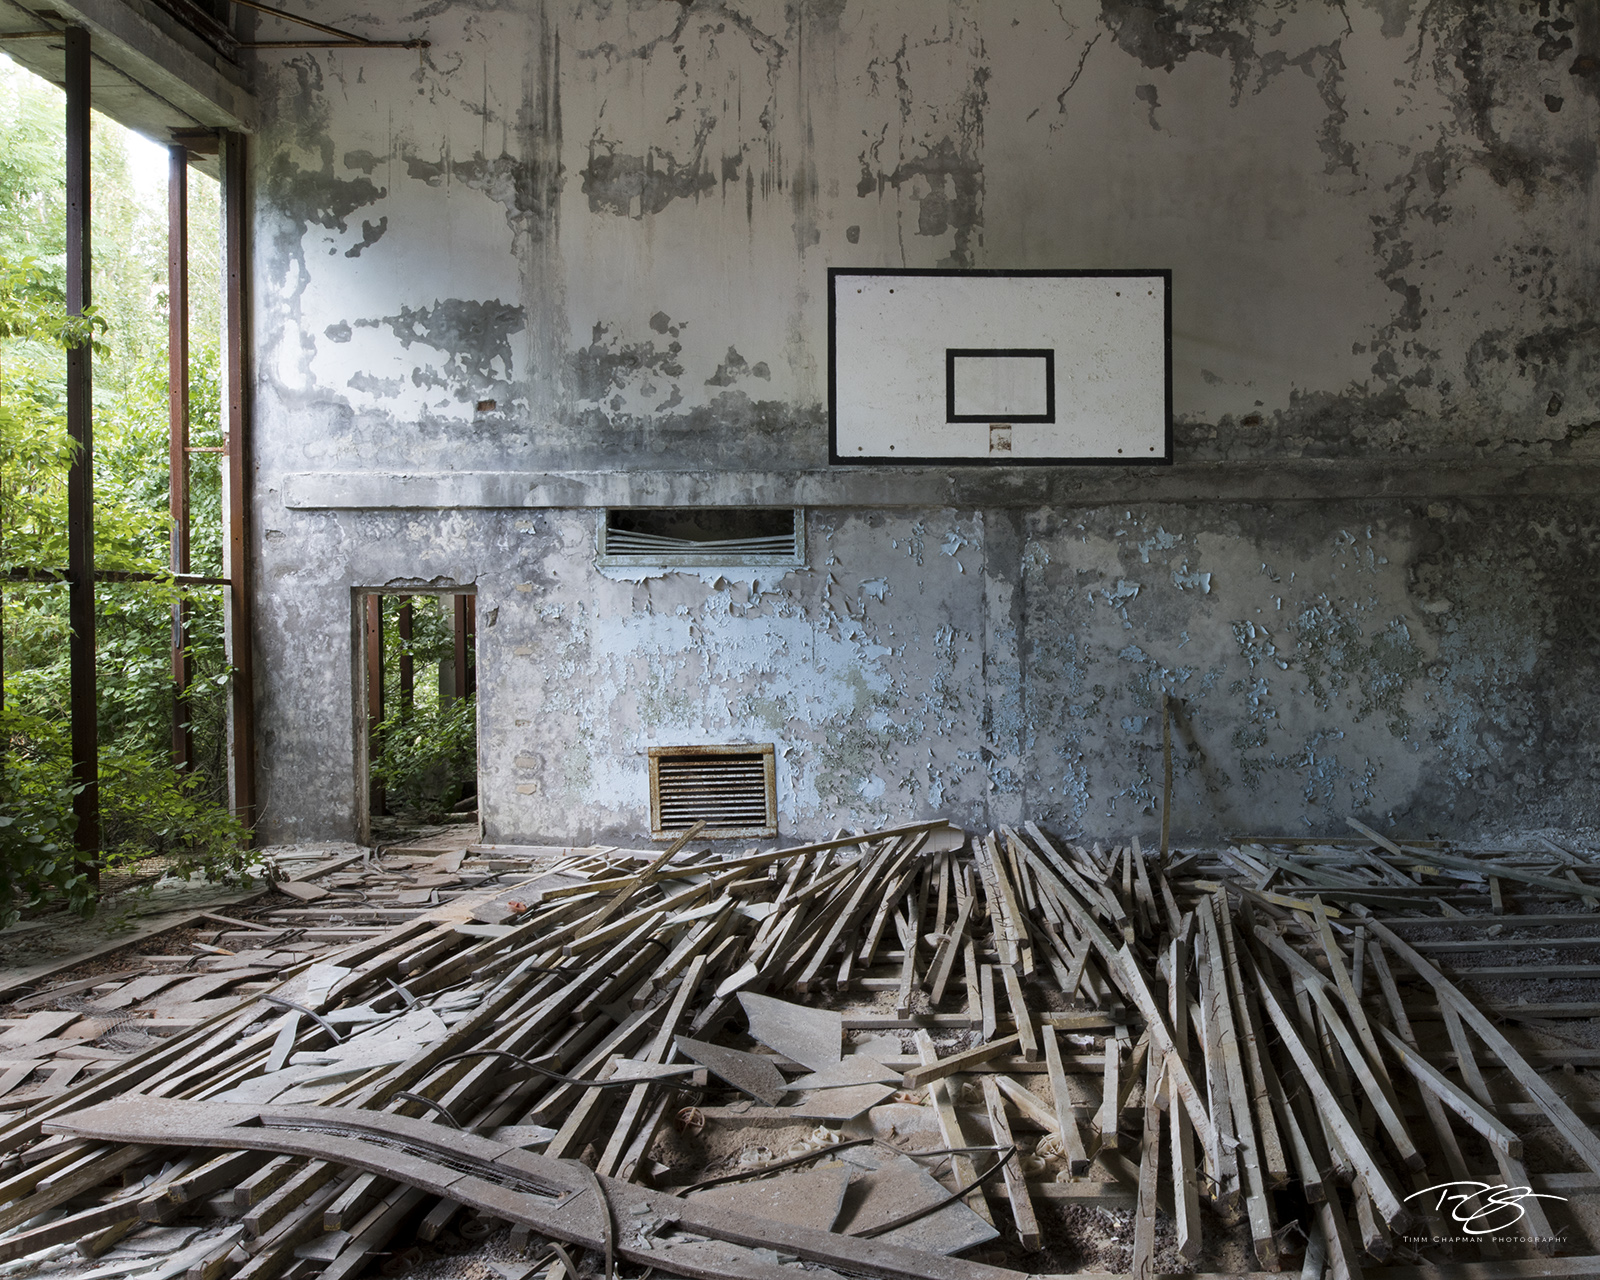 chernobyl, chornobyl, pripyat, exclusion zone, abandoned, forgotten, wasteland, radioactive, decay, school, middle school, gymnasium, gym, warped floorboards, reclamation, warped, peeling paint, dust, photo